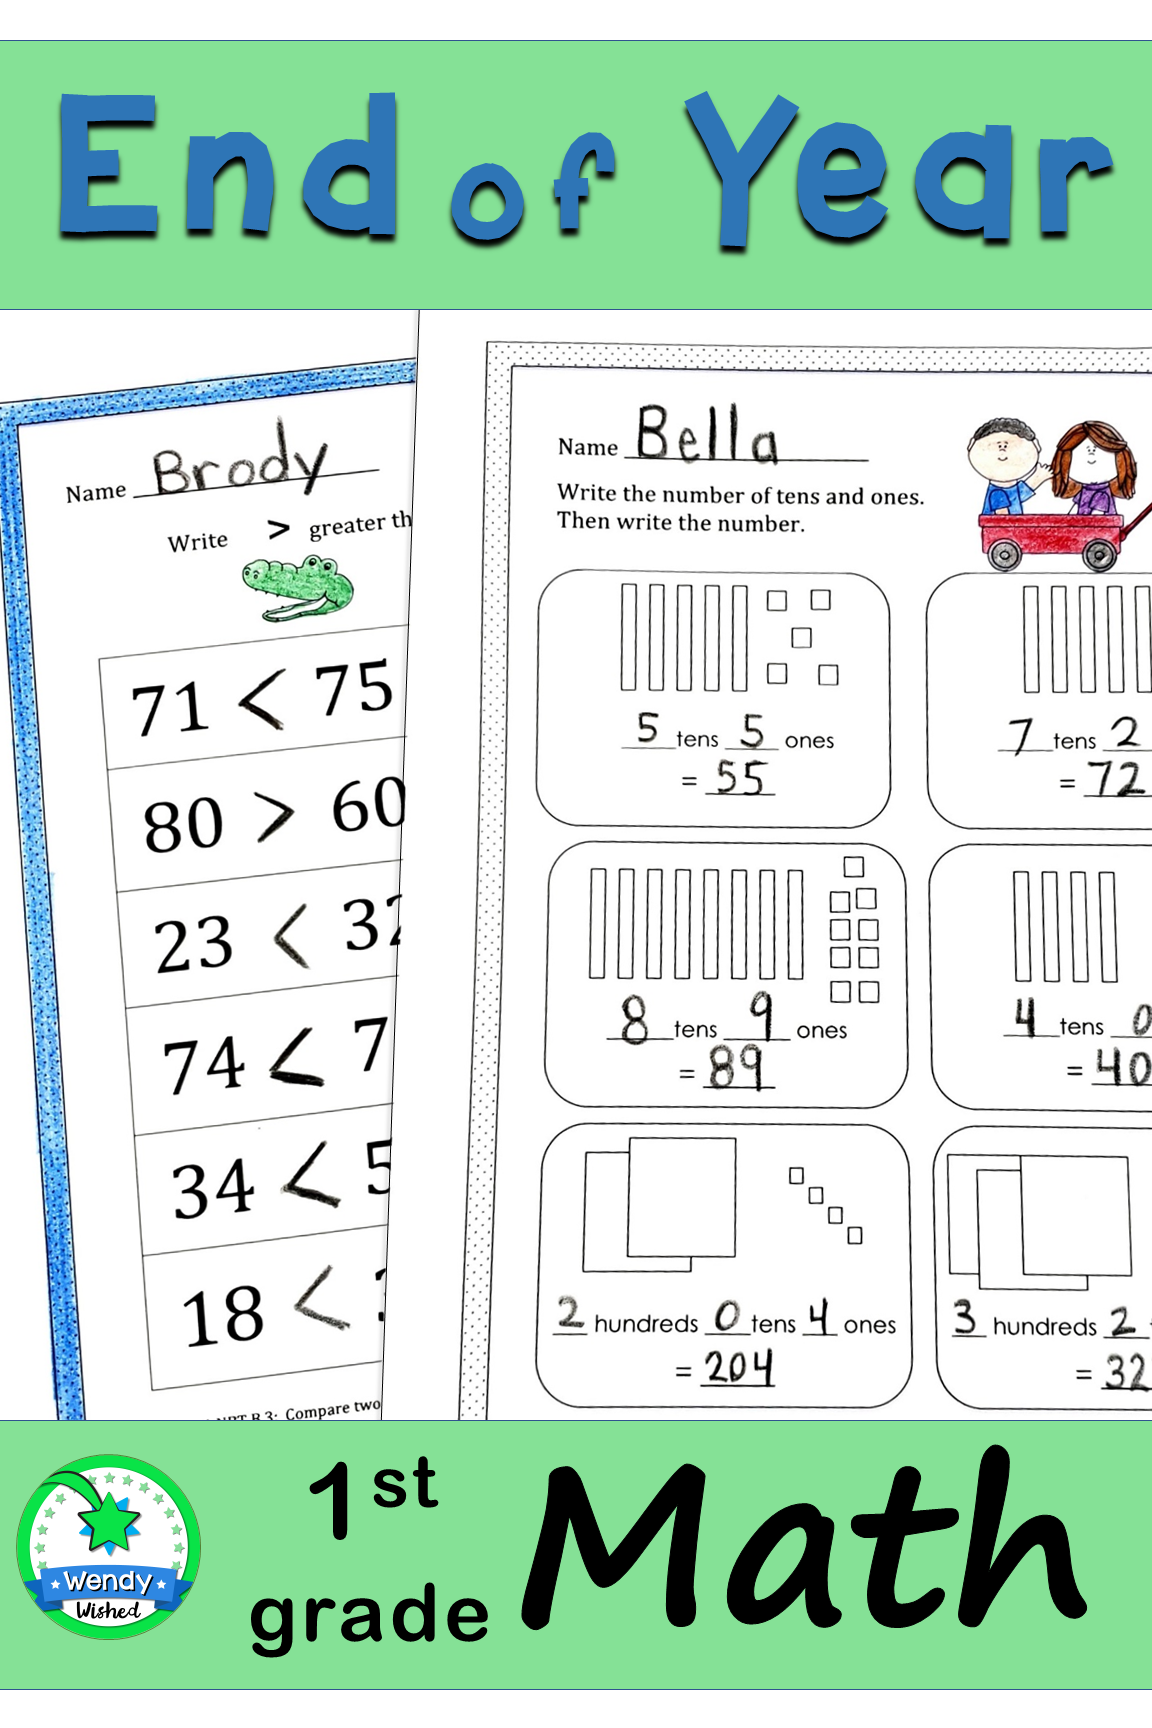 Pin On Wendy Wished For 1st Amp 2nd Grade Resources On Tpt